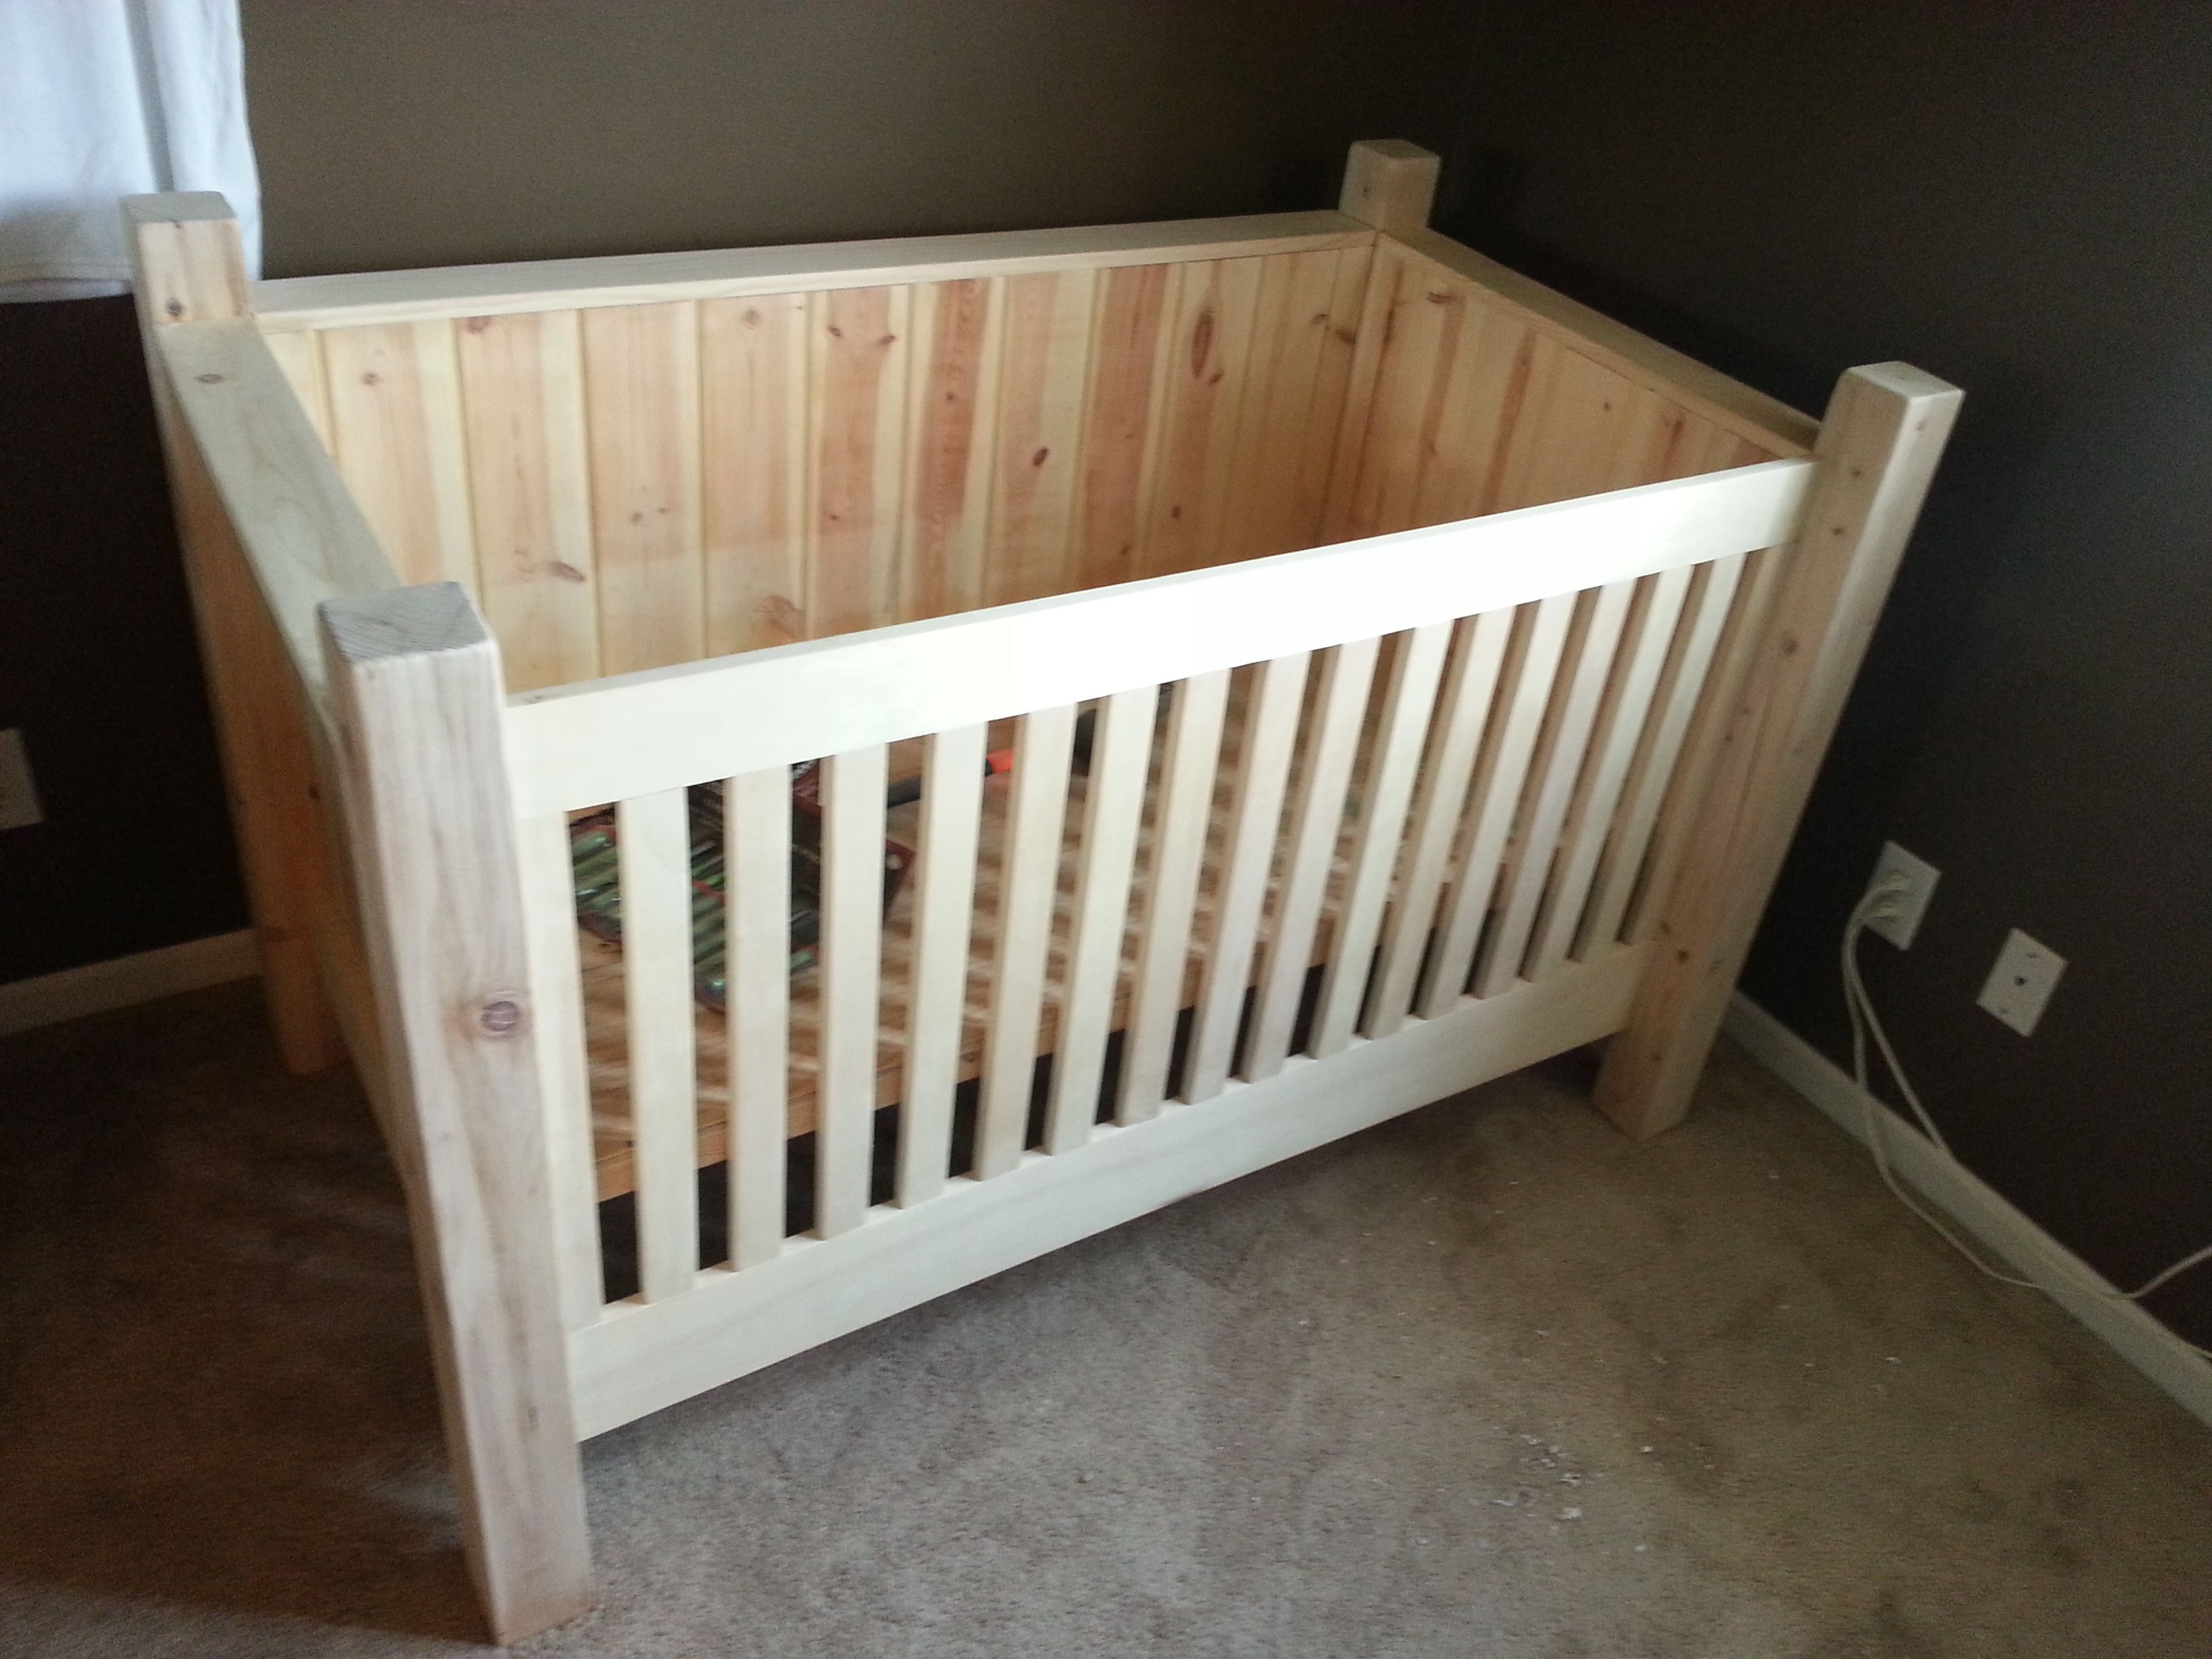 DIY Wood Crib. This is another option if doing all tree